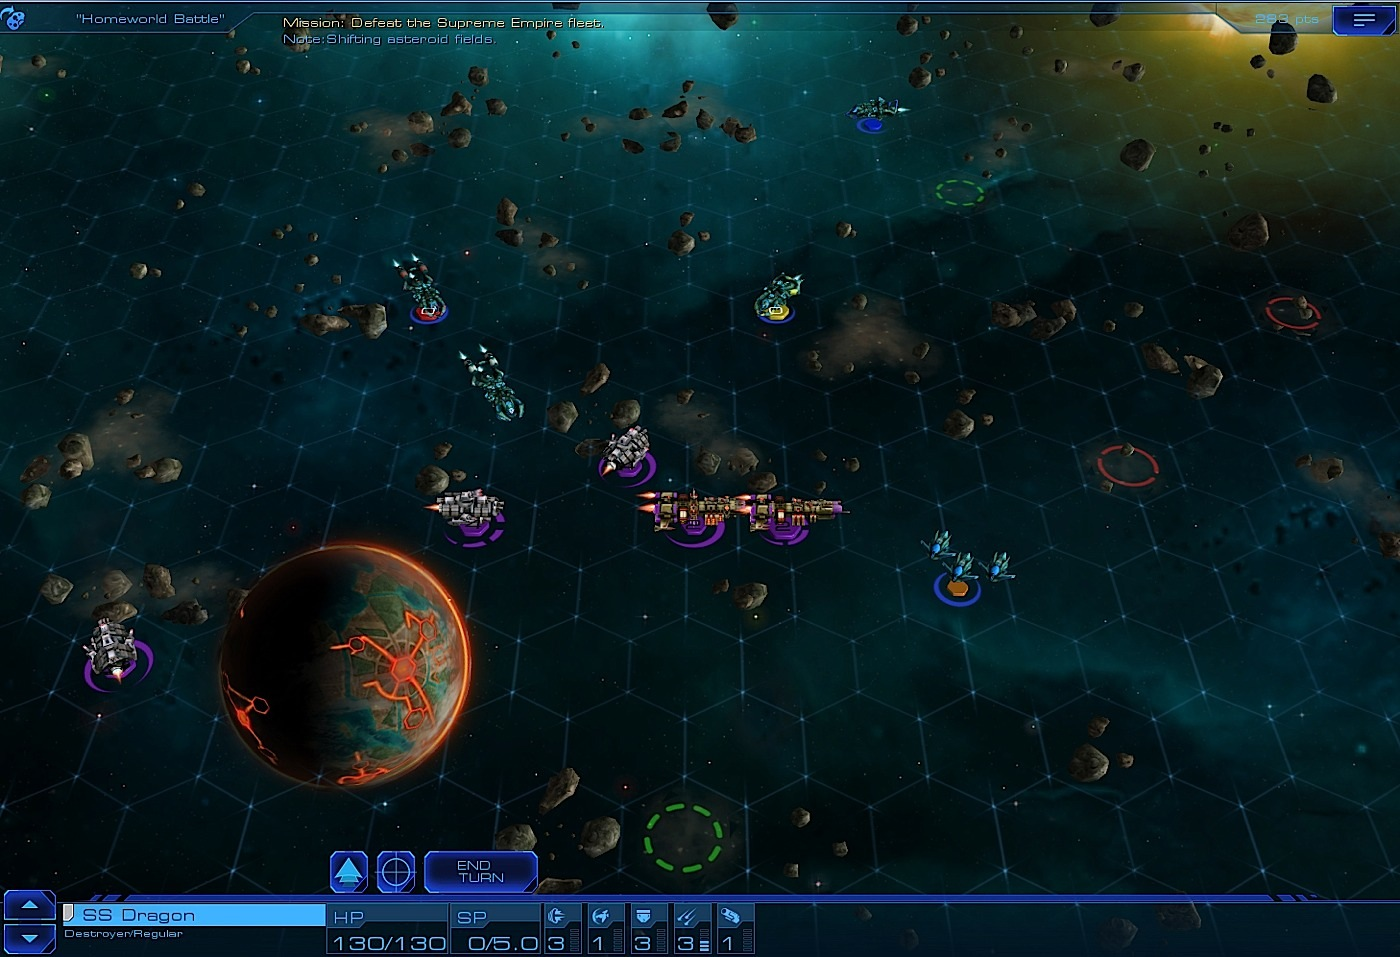 Sid Meier's Starships combat screenshot.